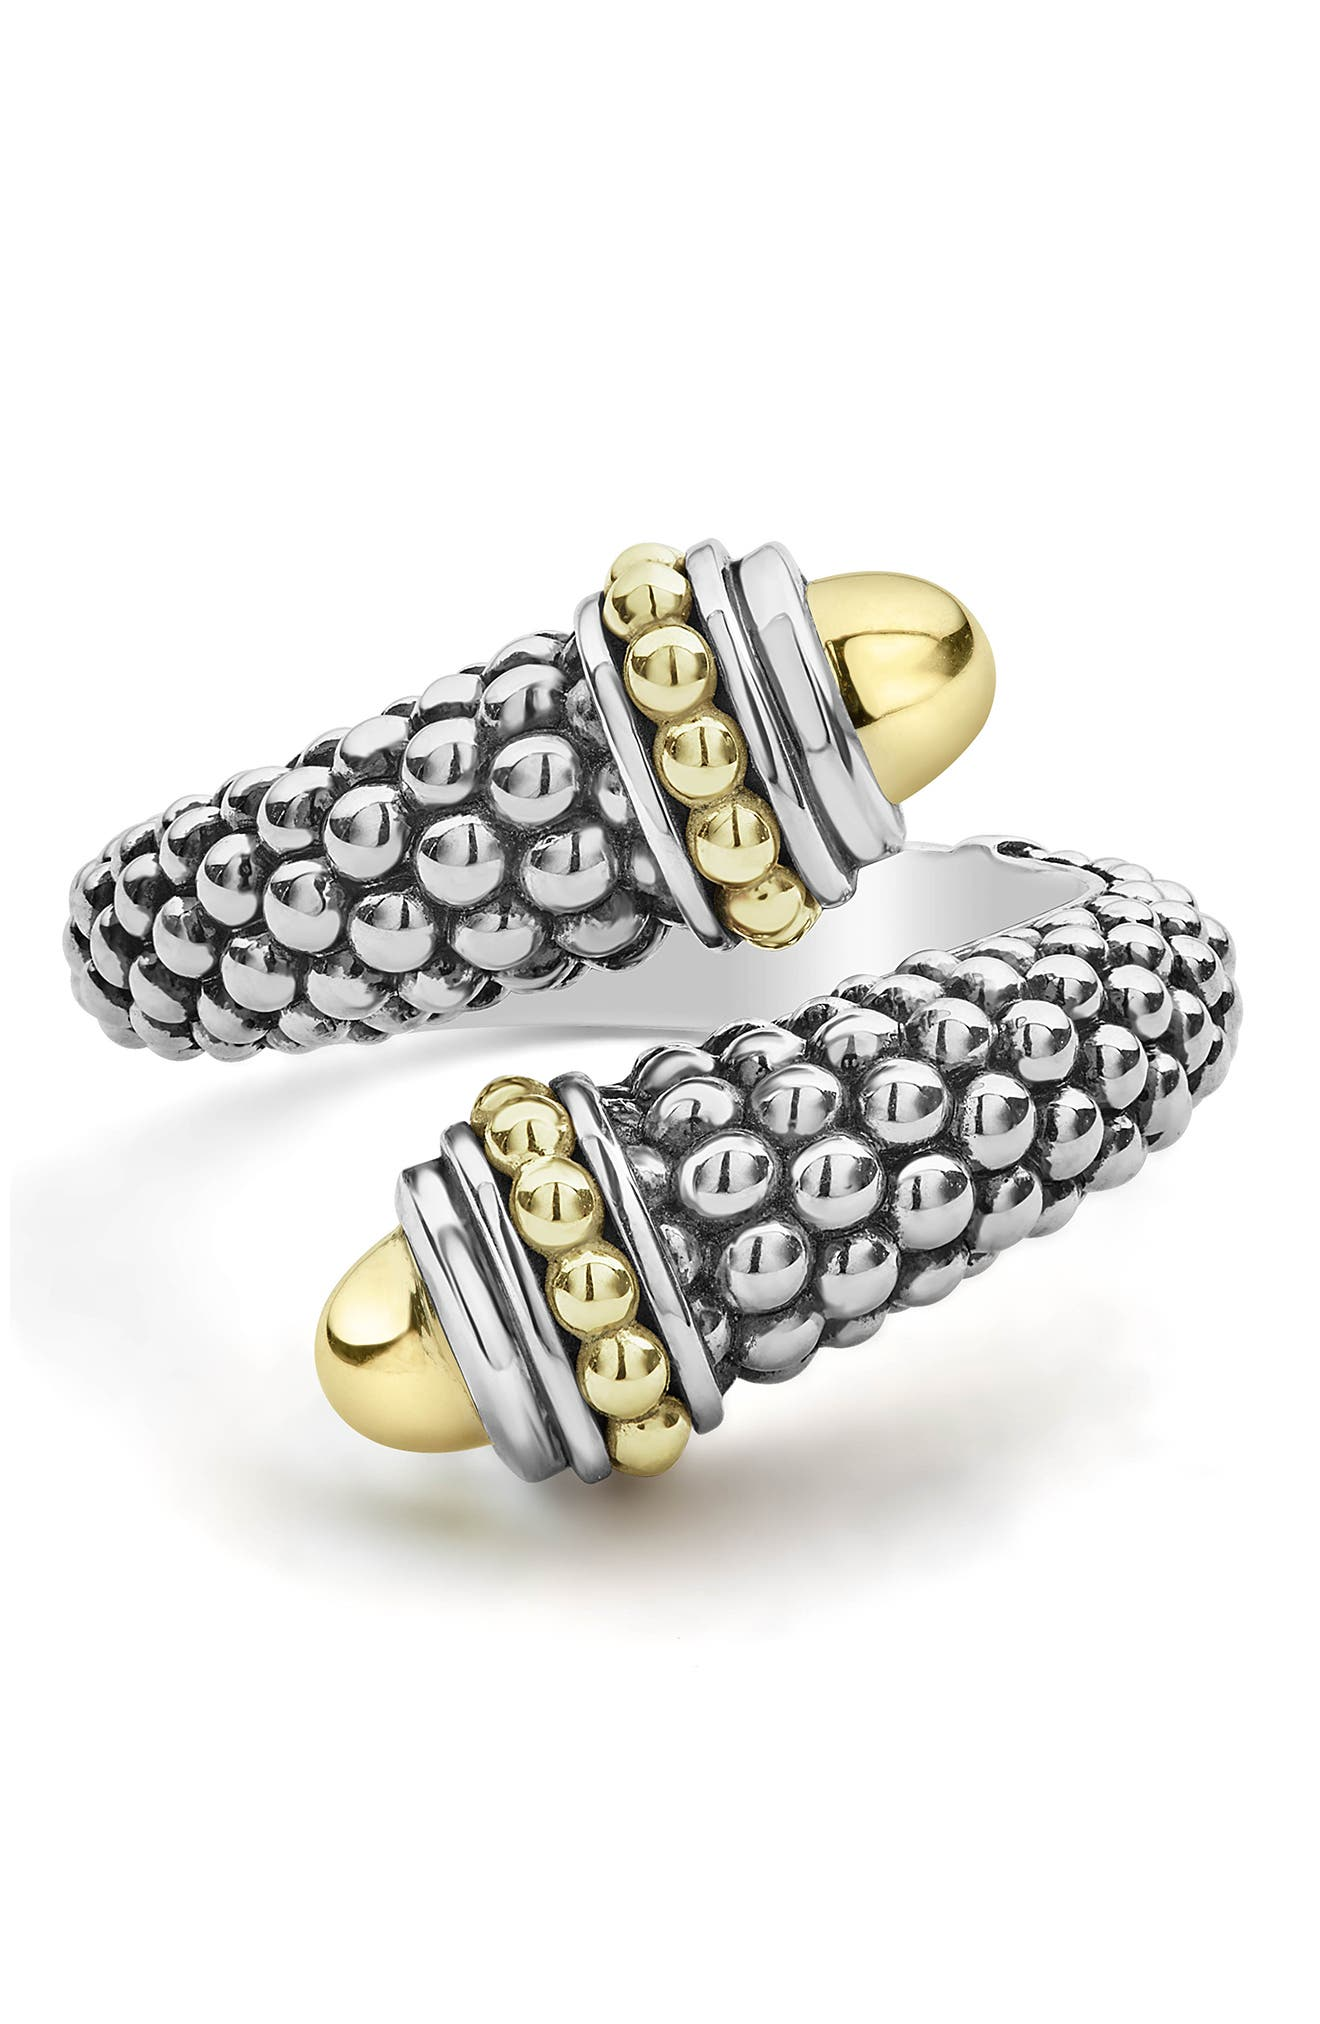 Signature Caviar Gold Cap Crossover Ring,                             Alternate thumbnail 6, color,                             SILVER/ GOLD